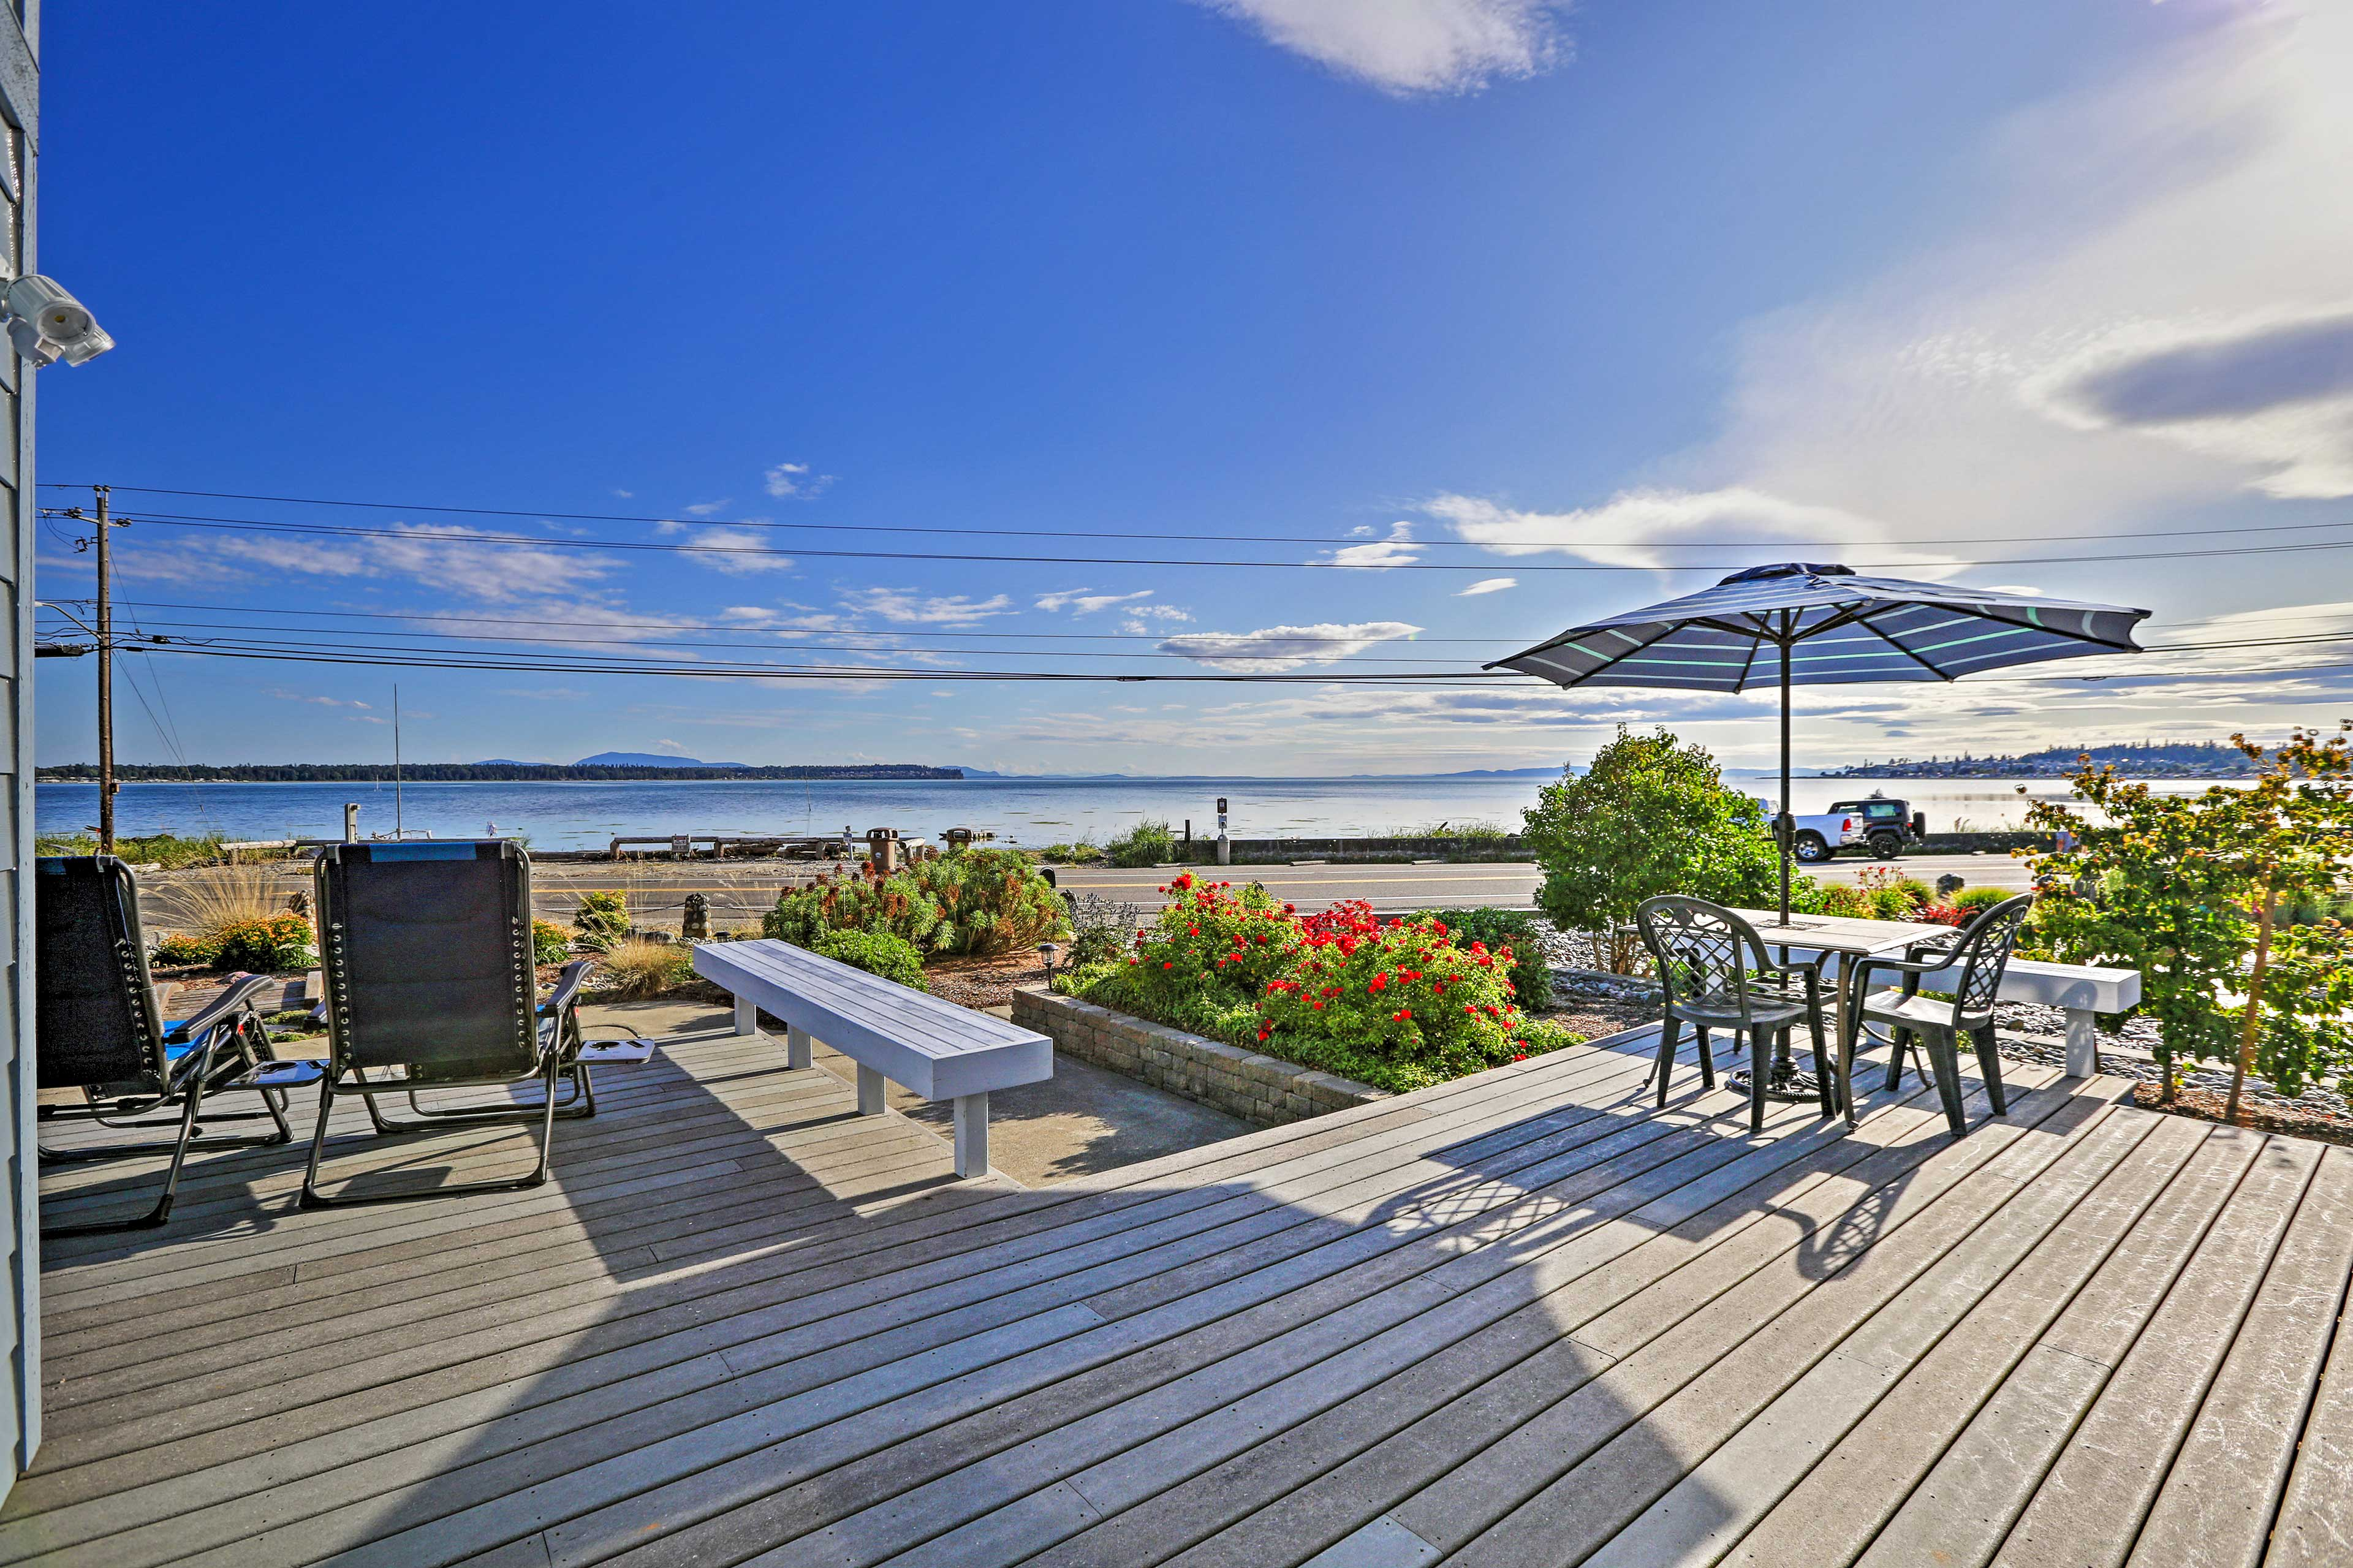 Soak in Birch Bay views from this waterfront home.